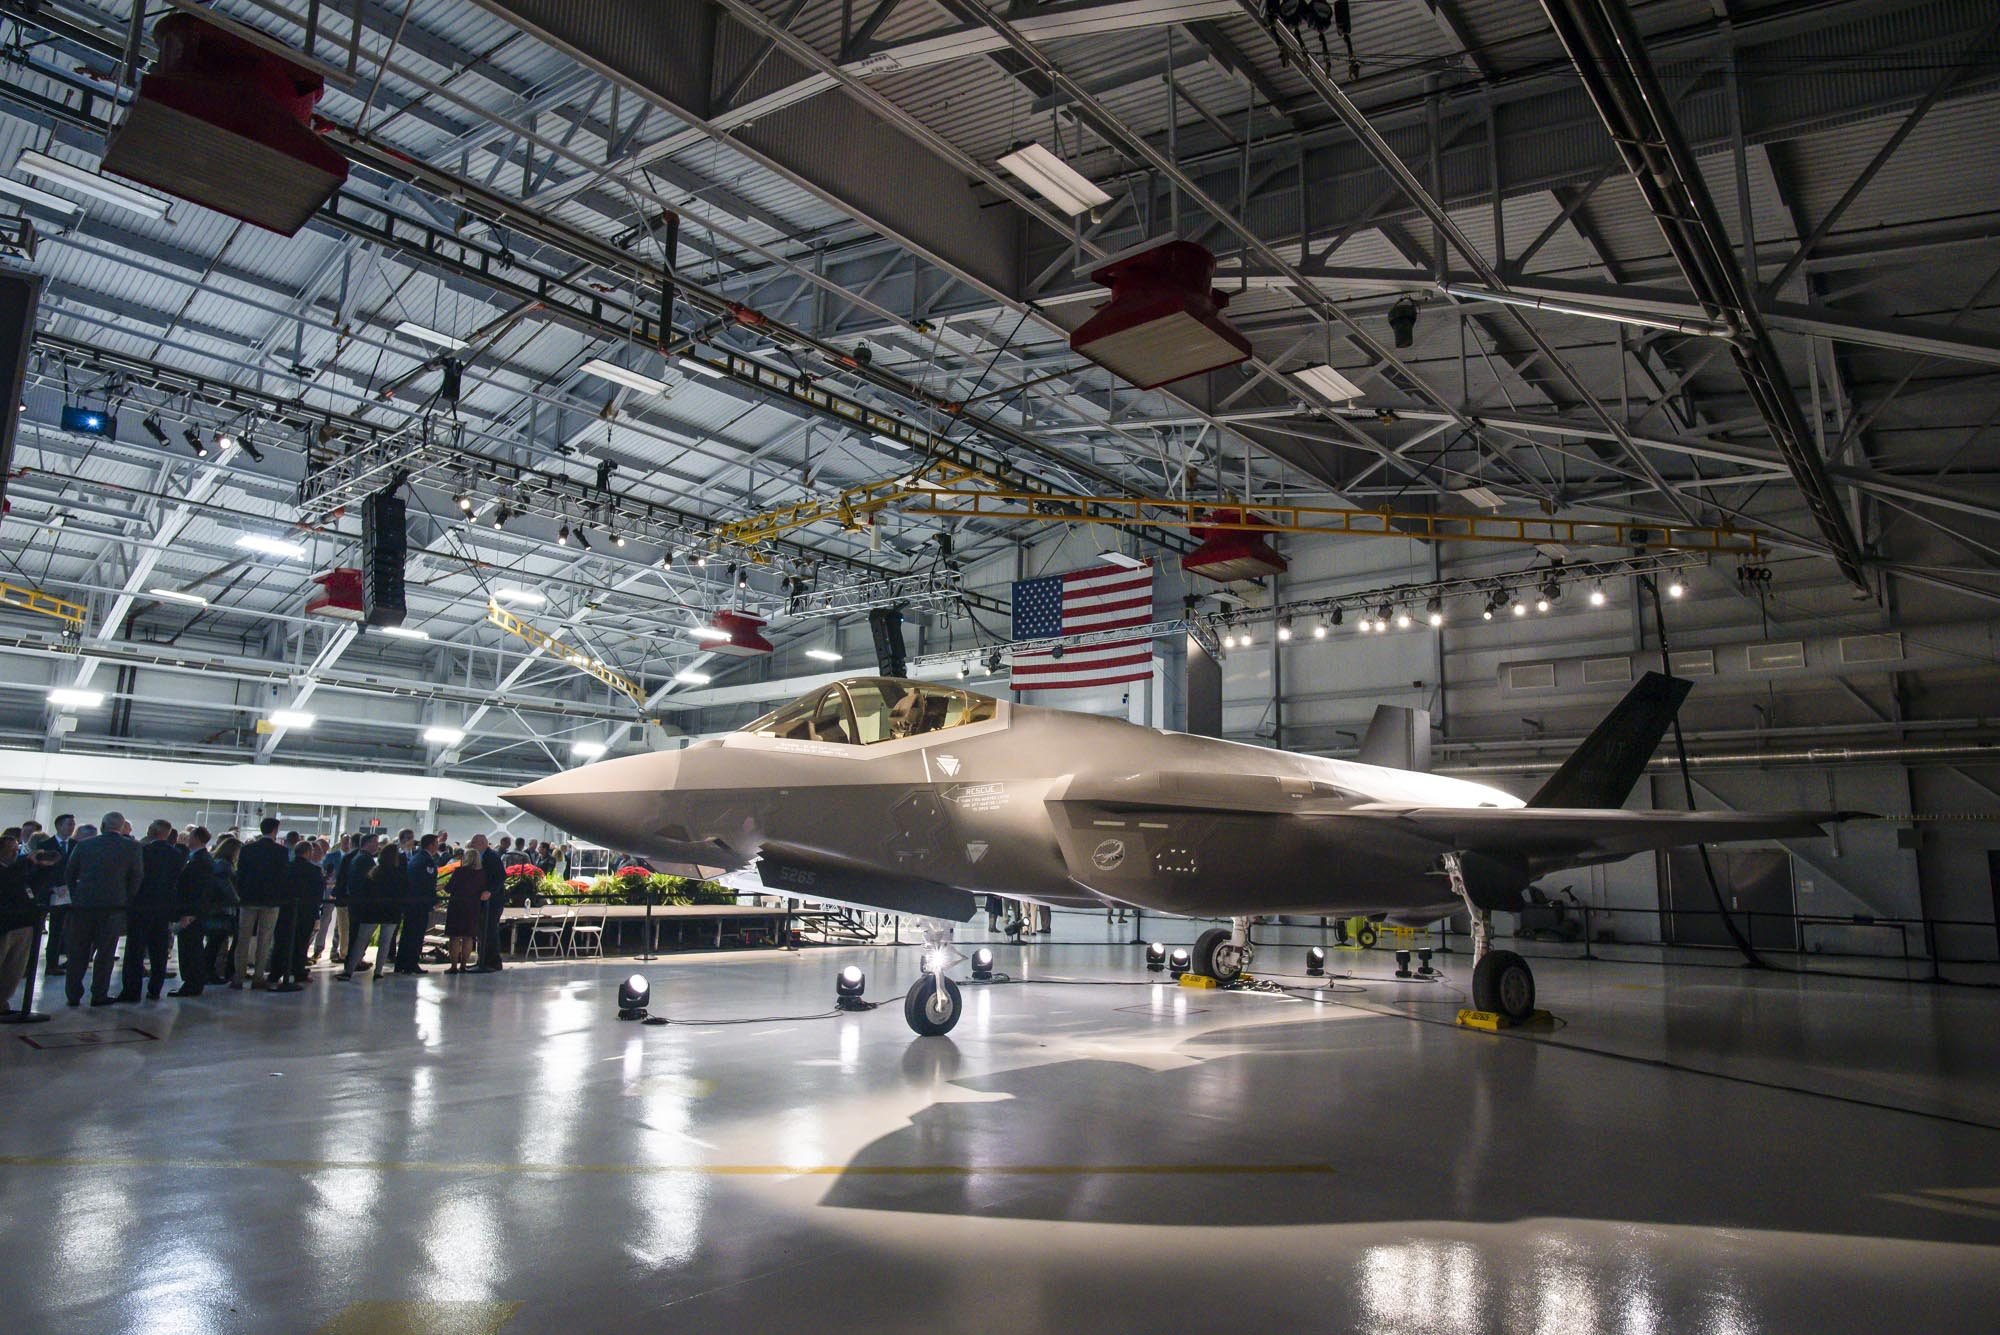 Chittenden County residents living under F-35 jets for a year